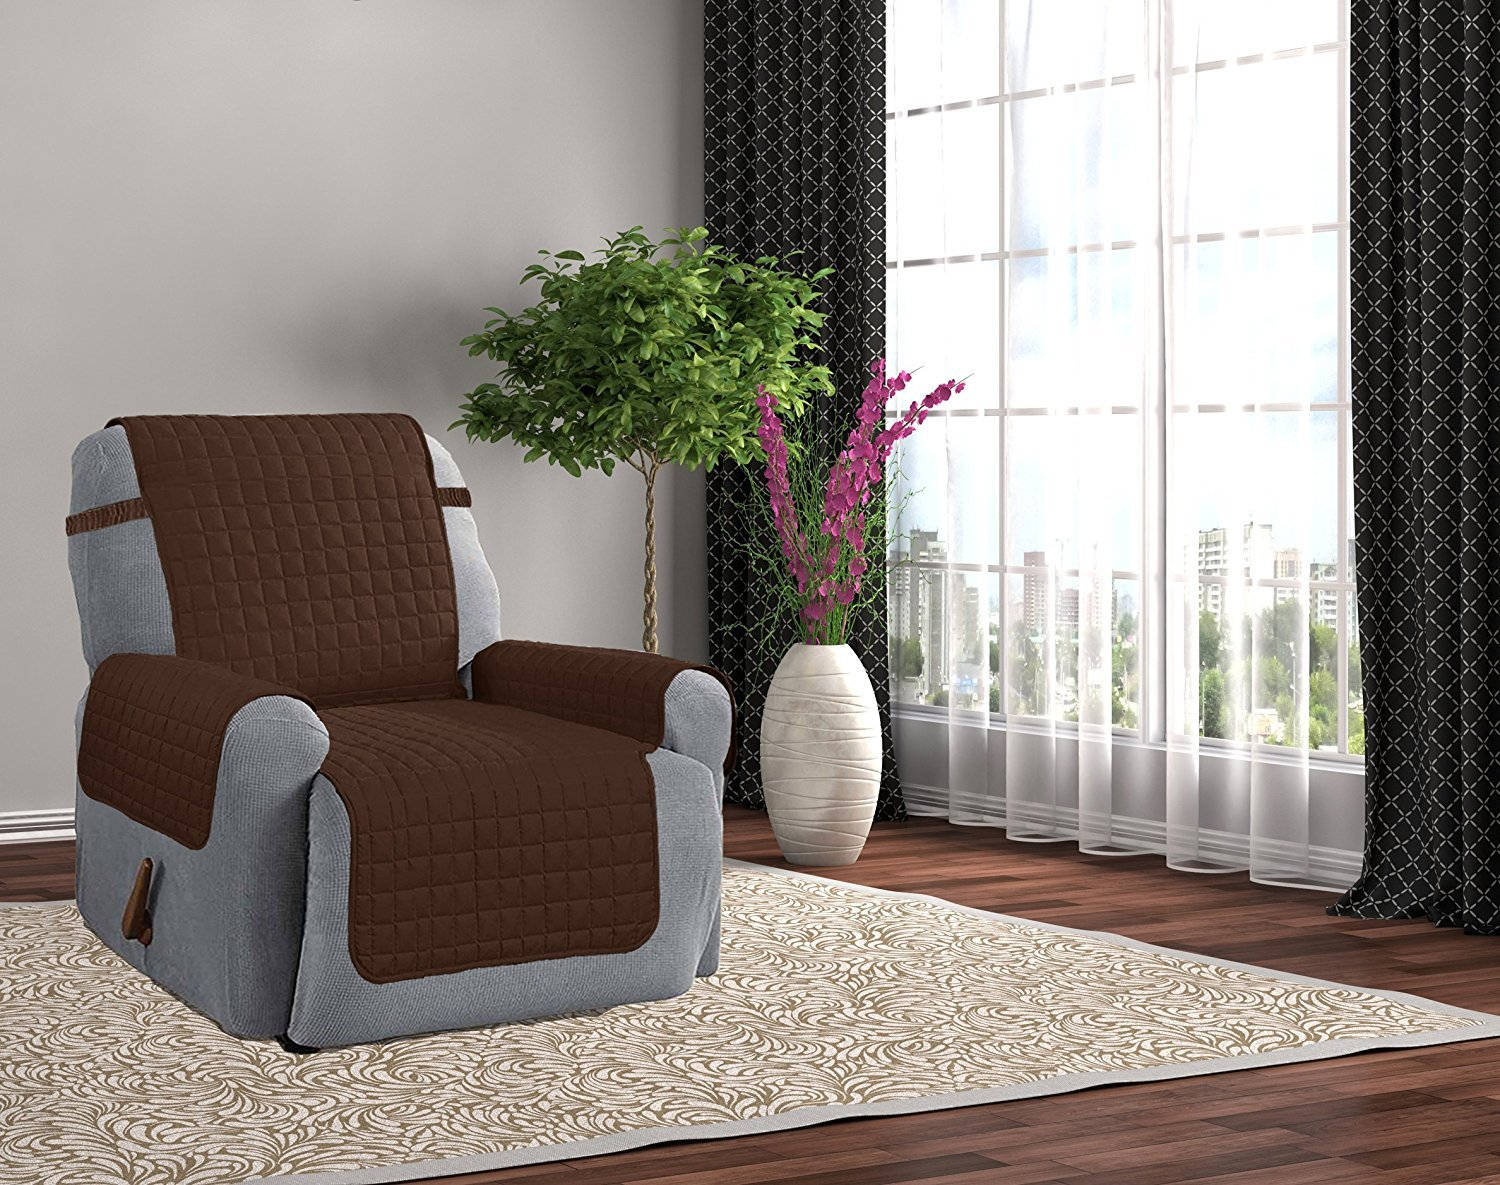 Microfiber Furniture Recliner Protector With 5 Tuck & Strap - Beige Kashi Home SC055100